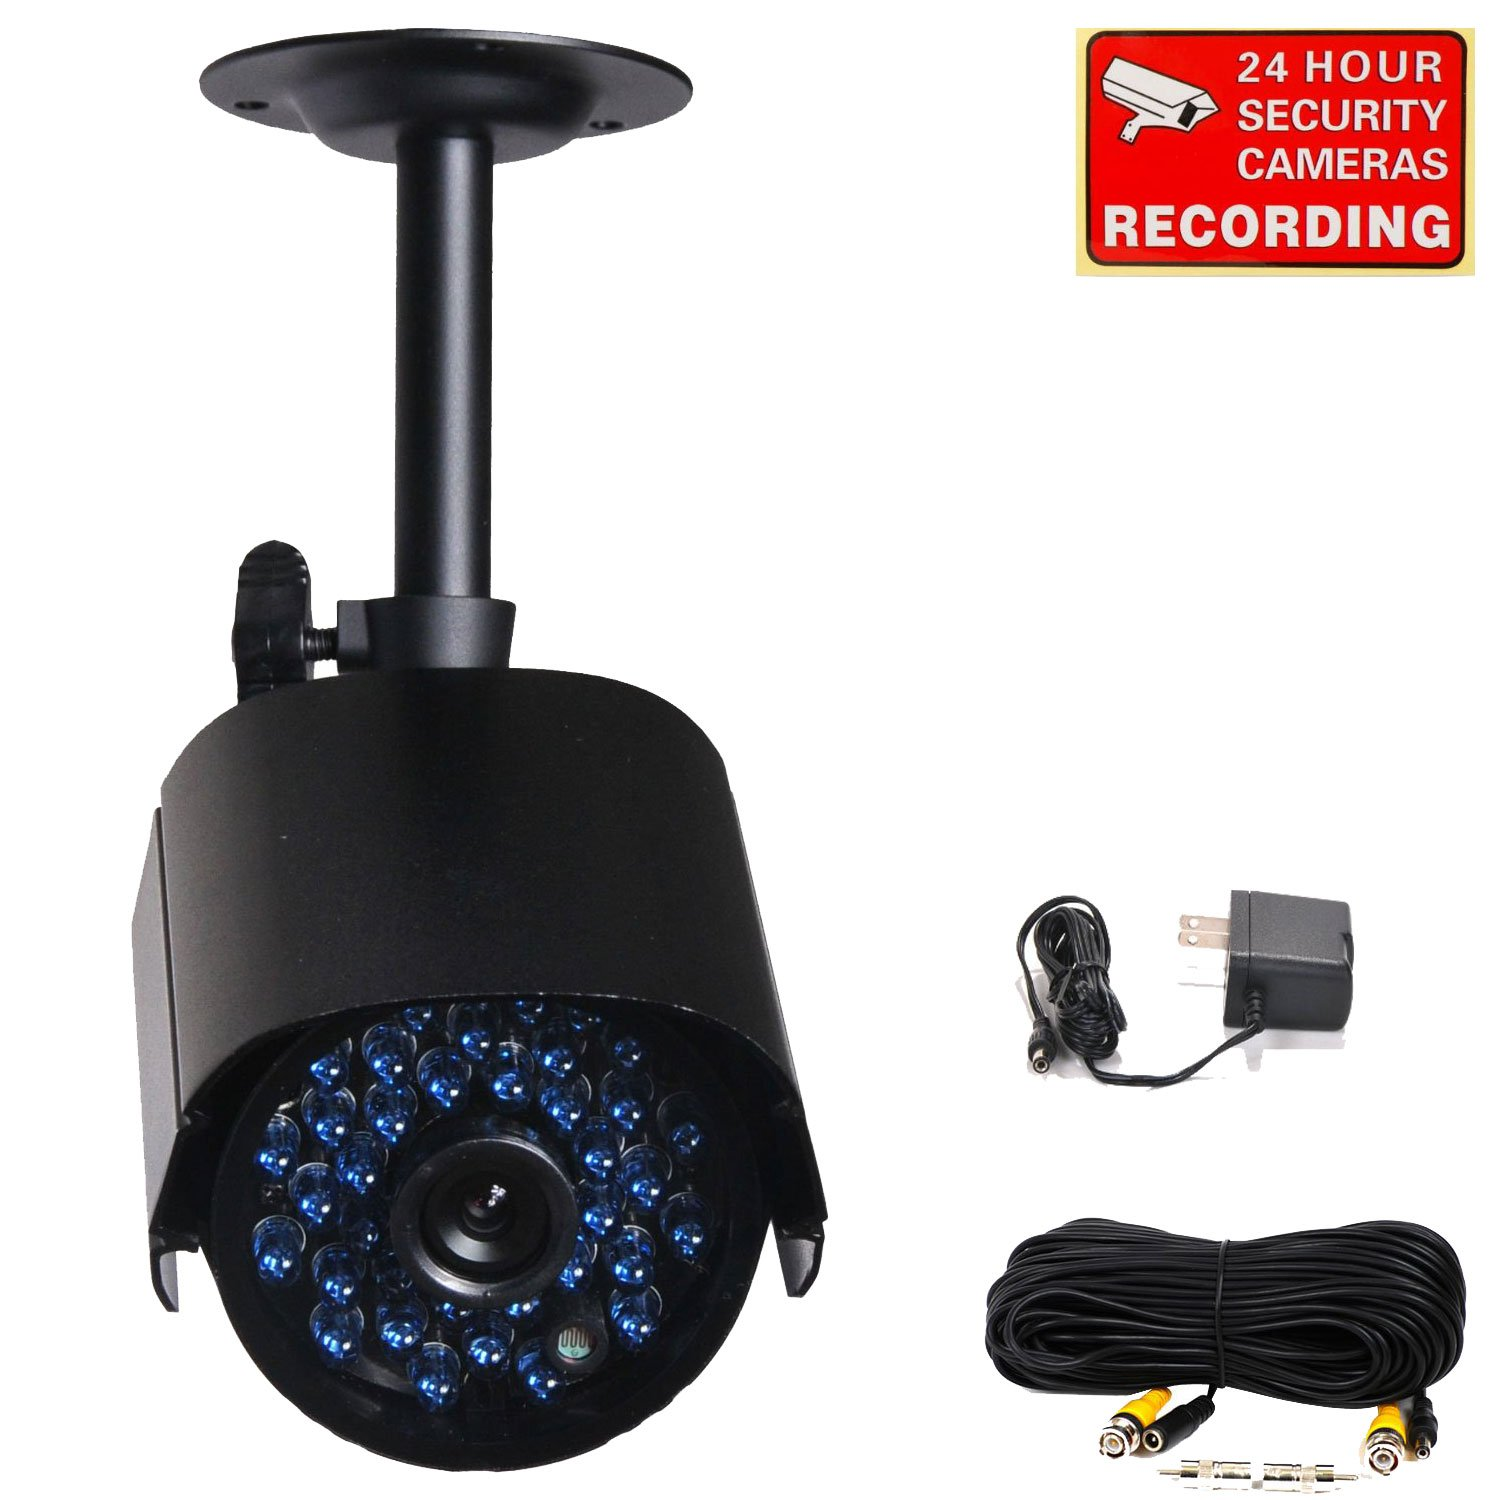 Amazon.com : VideoSecu Infrared Day Night Outdoor Bullet Security ...